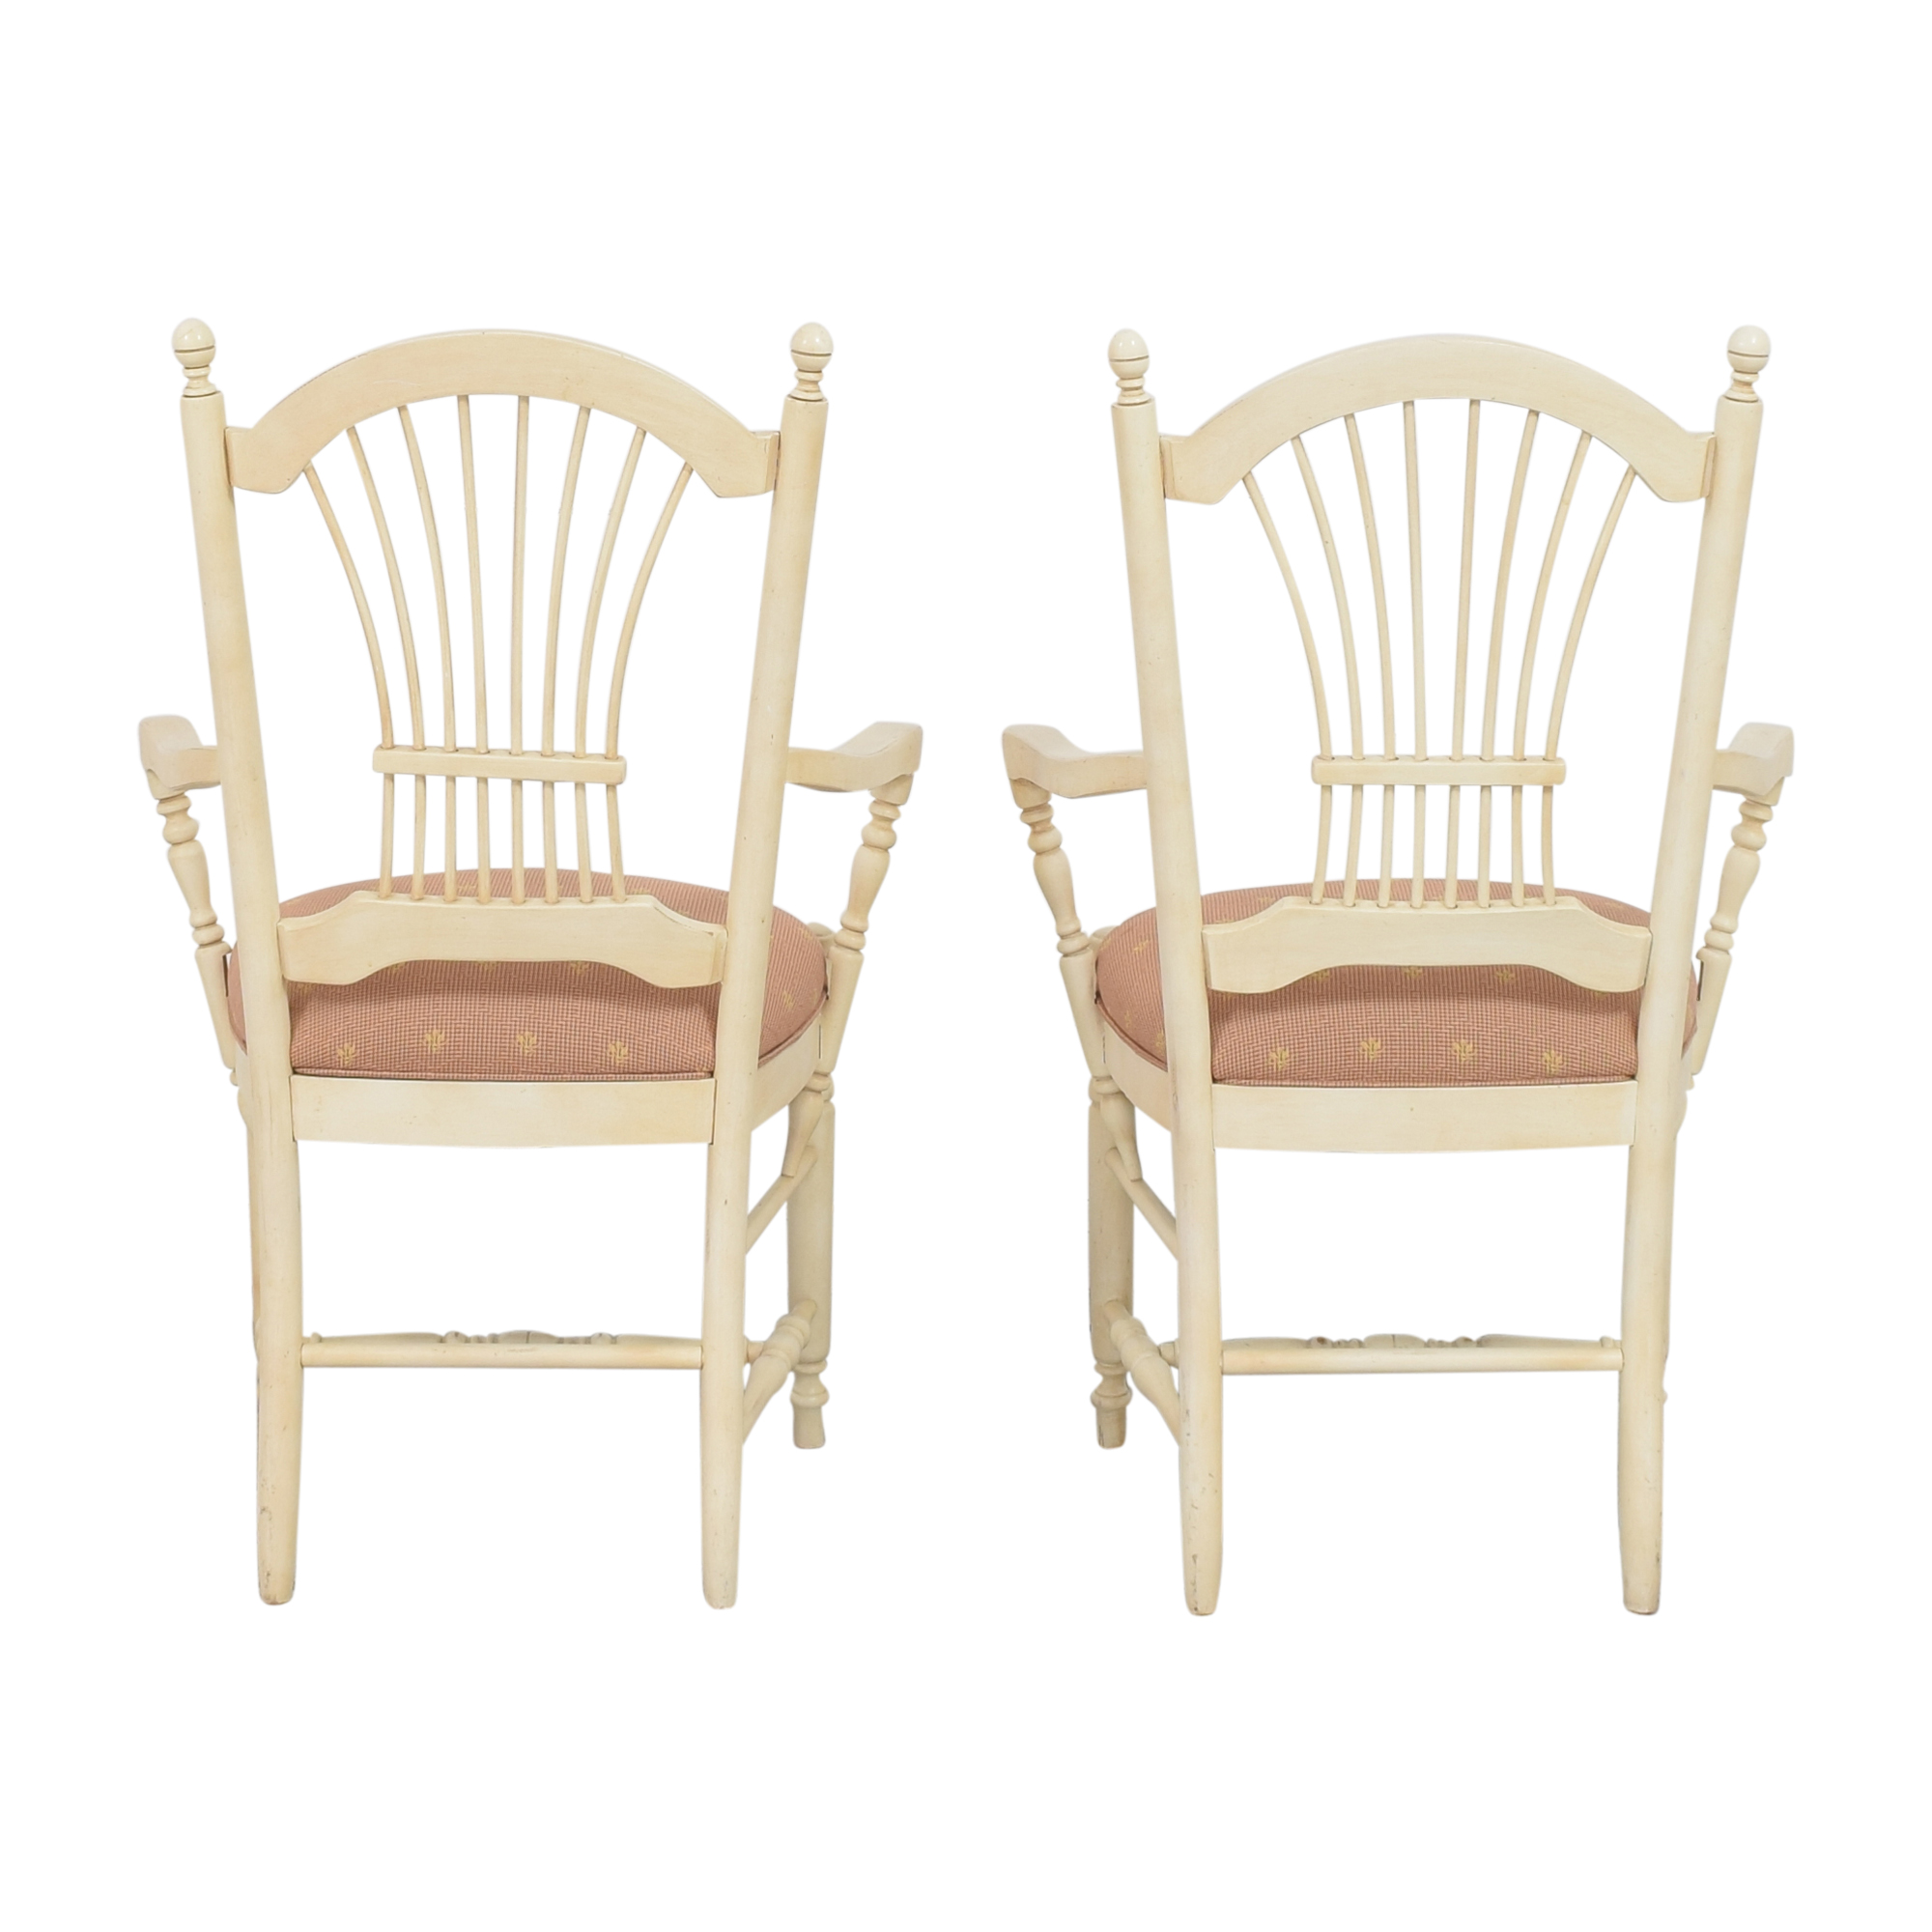 Ethan Allen Ethan Allen Country French Dining Arm Chairs coupon